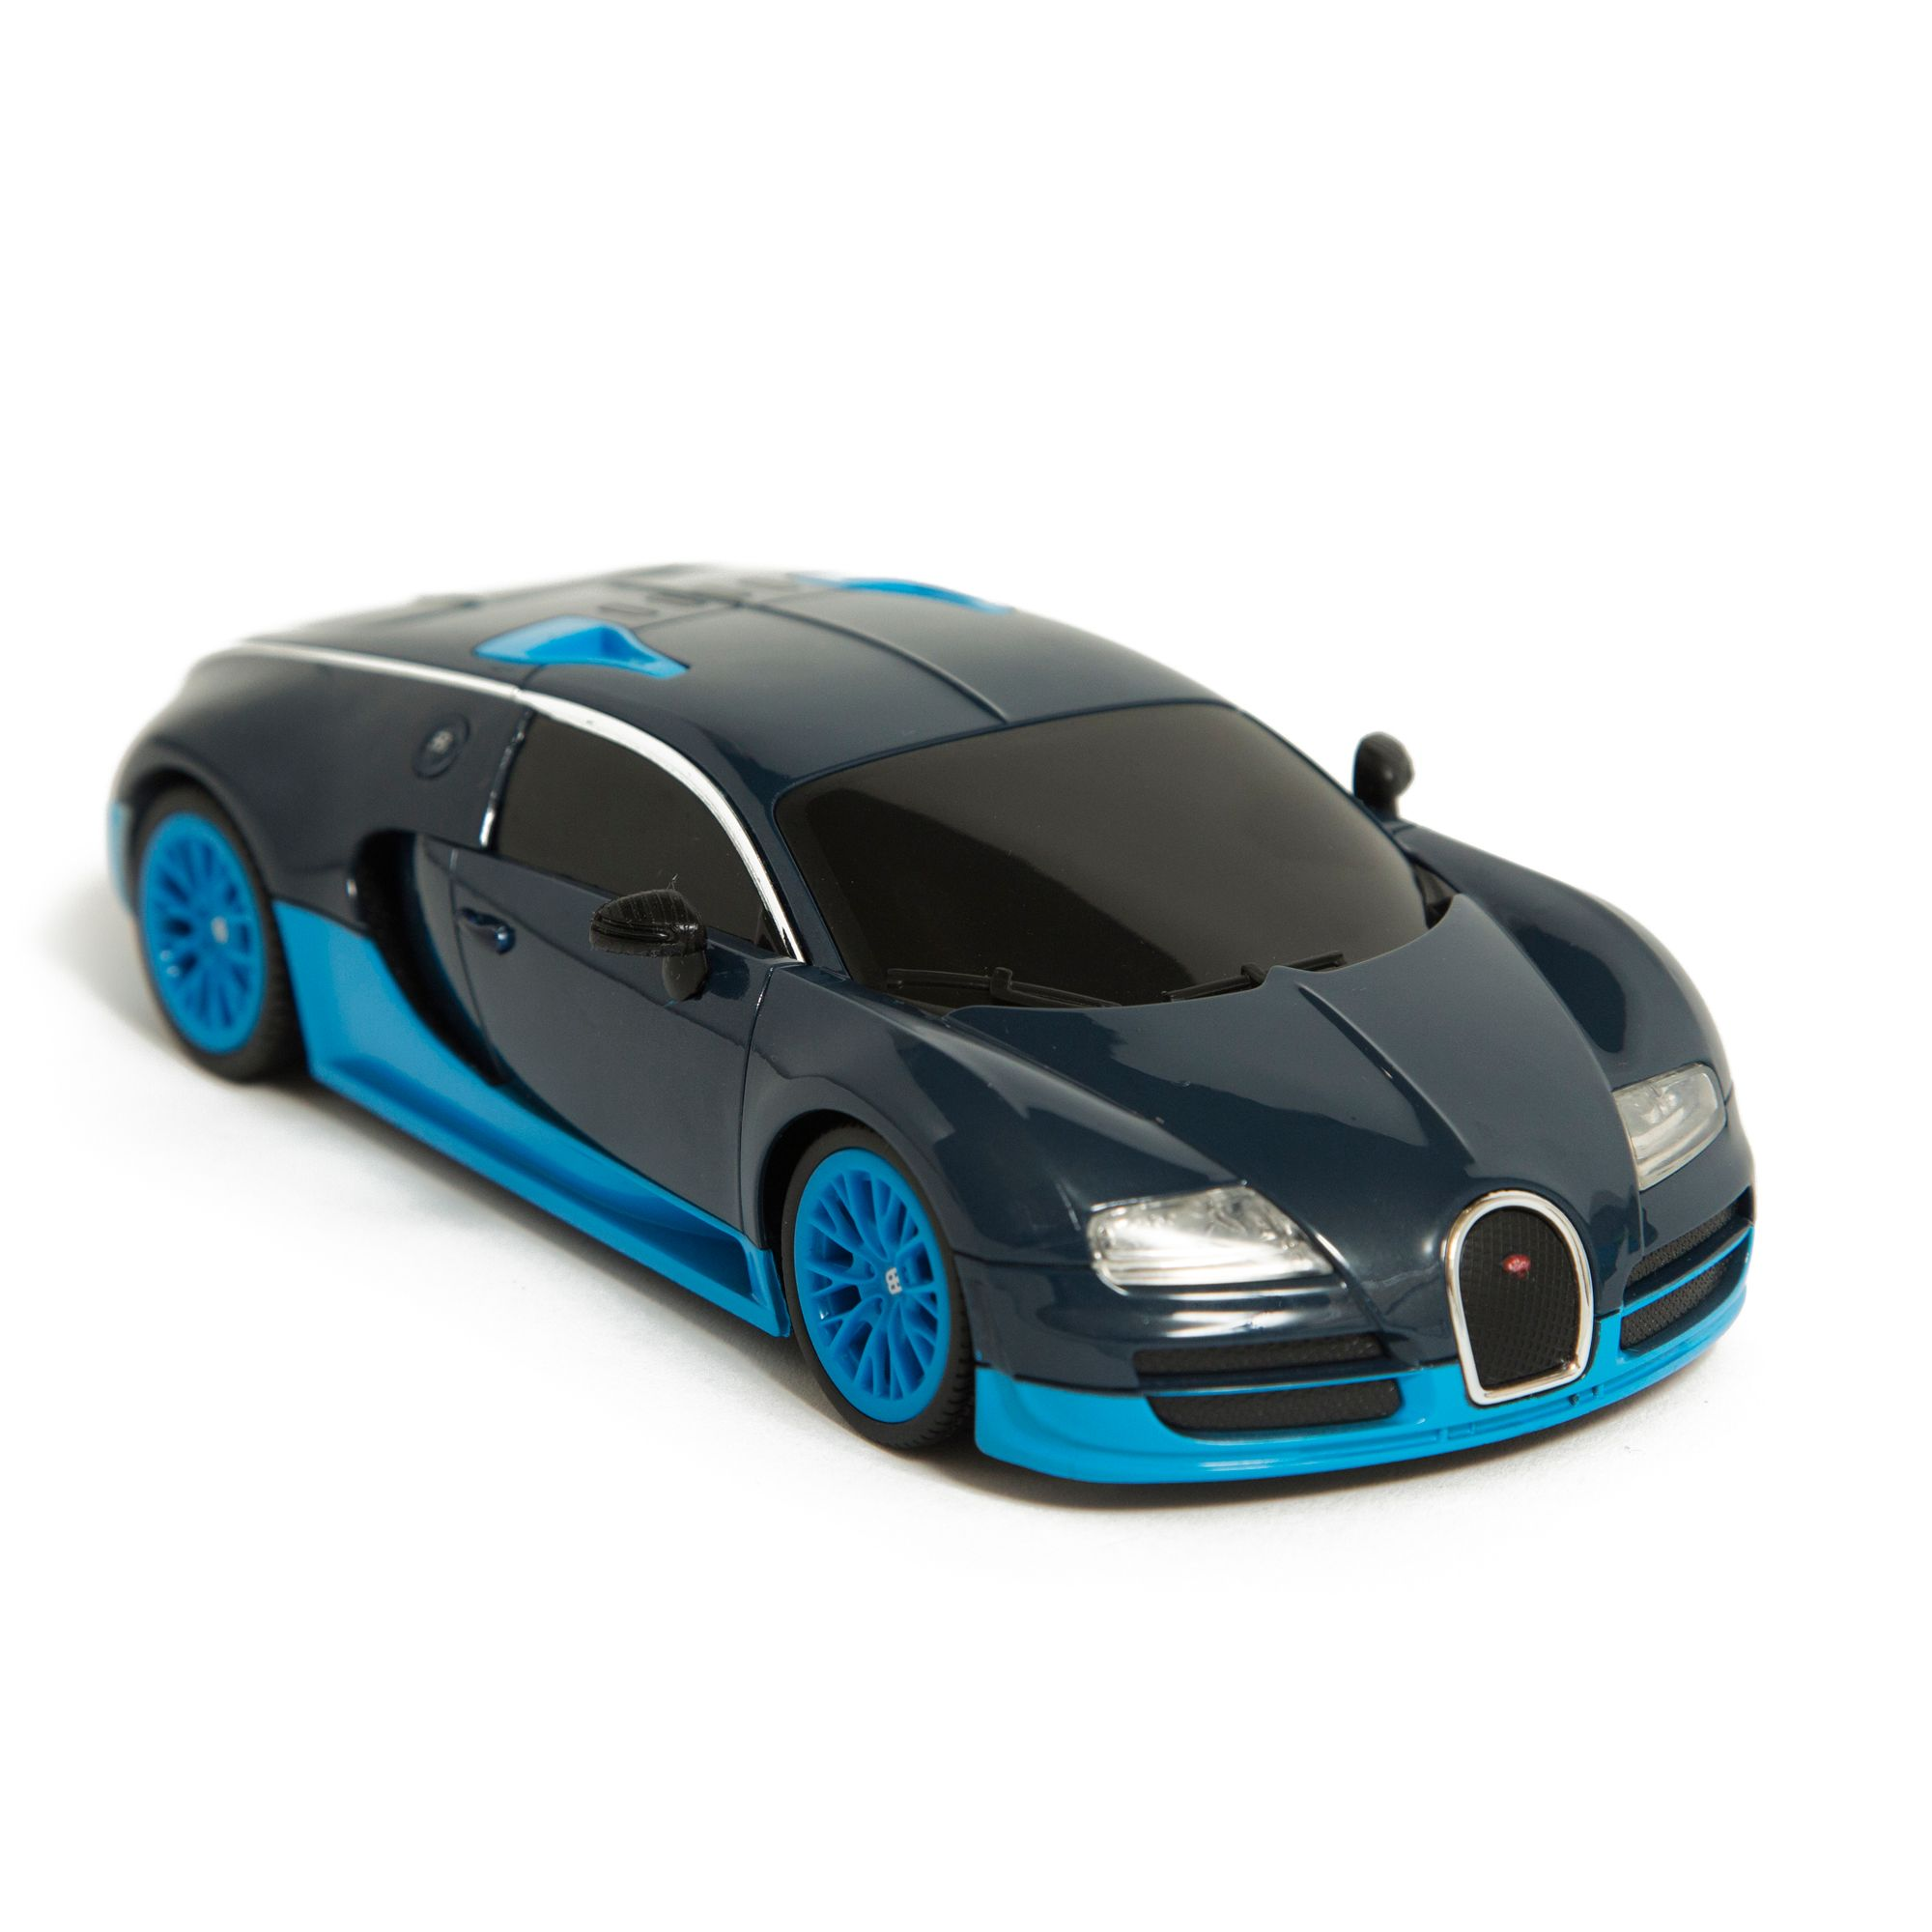 Image of Hamleys Scale Bugatti Veyron RC Car